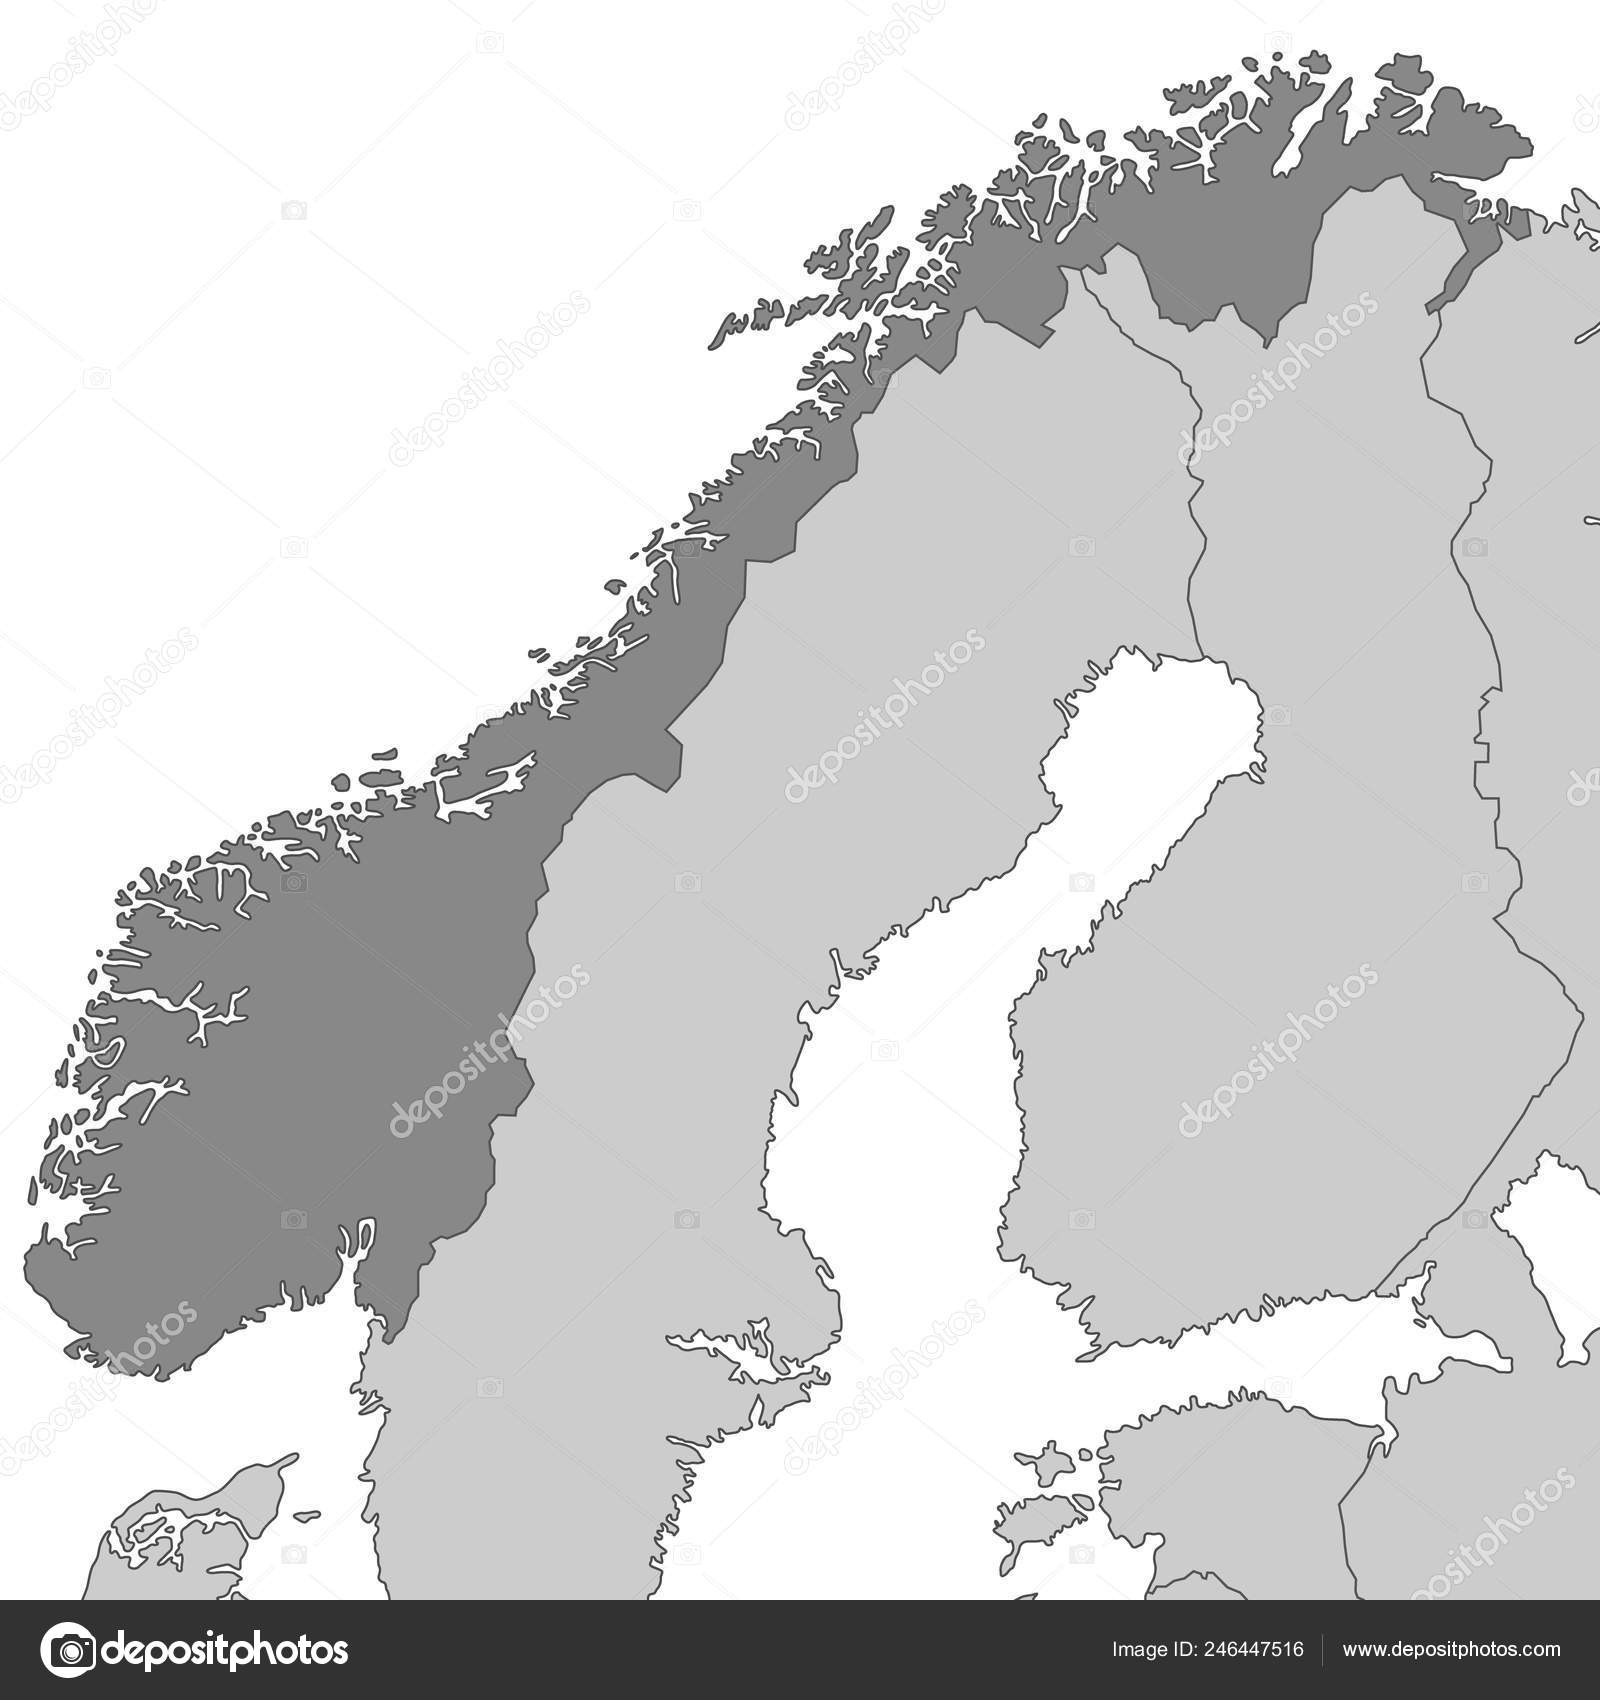 Map Scandinavia High Detailed Vector — Stock Vector © ii-graphics on map of sweden, map of holland, map of norway, map of ireland, map of benelux, map of british isles, map of iceland, map of england, map of canada, map of austria, map of australia, map of germany, map of georgia, map of africa, map of pakistan, map of the pyrenees, map of denmark, map of netherlands,